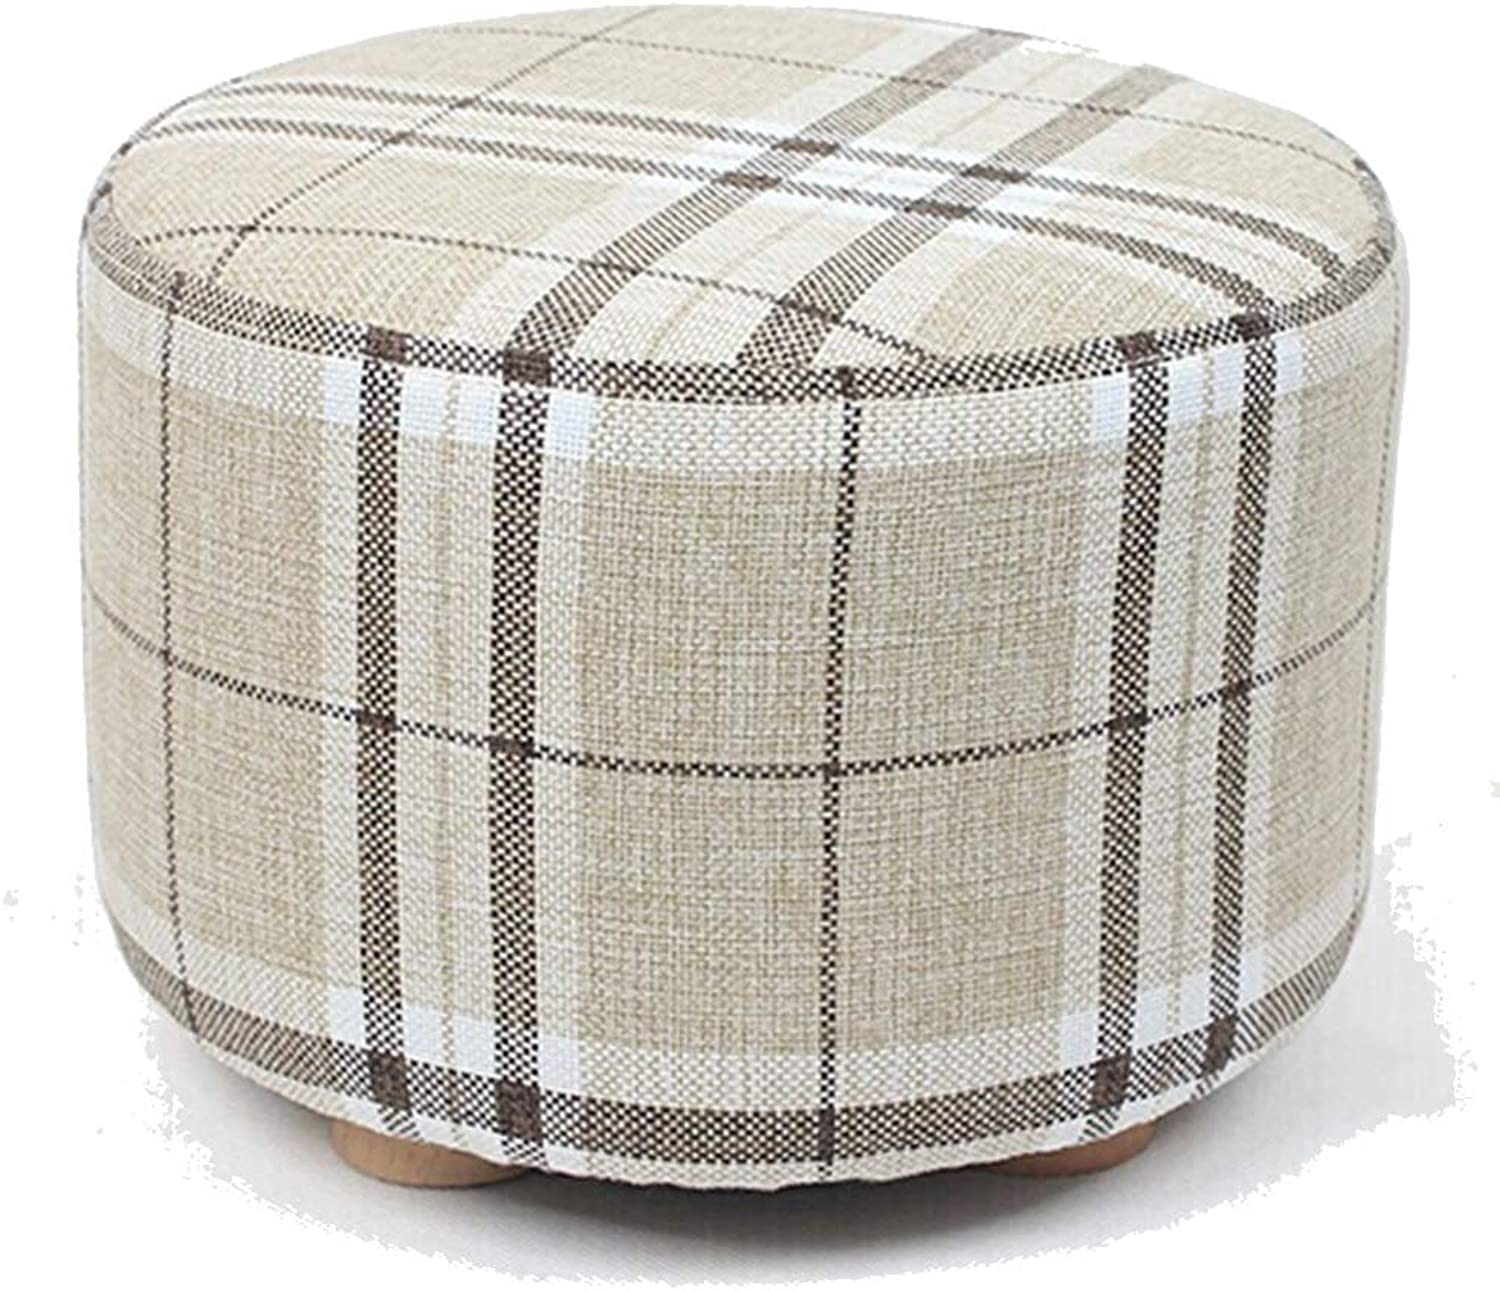 ZHAOYONGLI Stools Footstool Work Stool Step Stool Change shoes Cloth Round Small Sofa Wearing shoes Building Blocks Low Stool Geometry Soft Creative Solid Durable Long Lasting